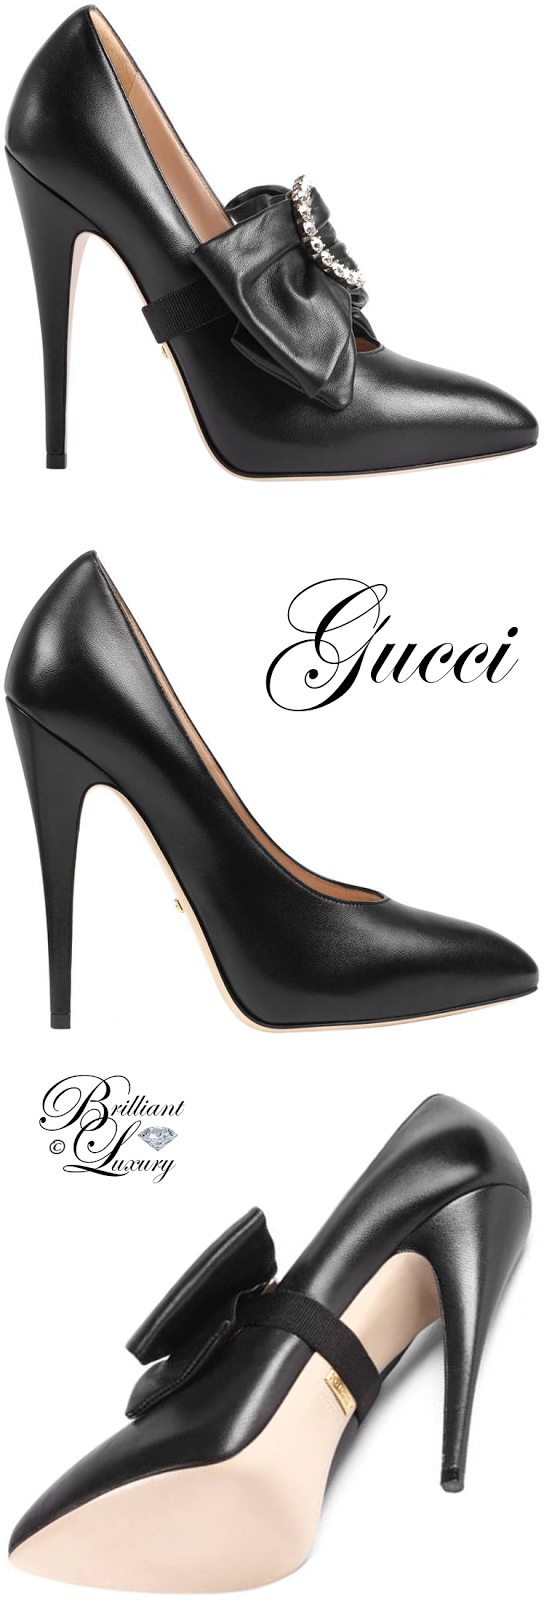 Brilliant Luxury ♦ Gucci Leather Pump With Removable Leather Bow